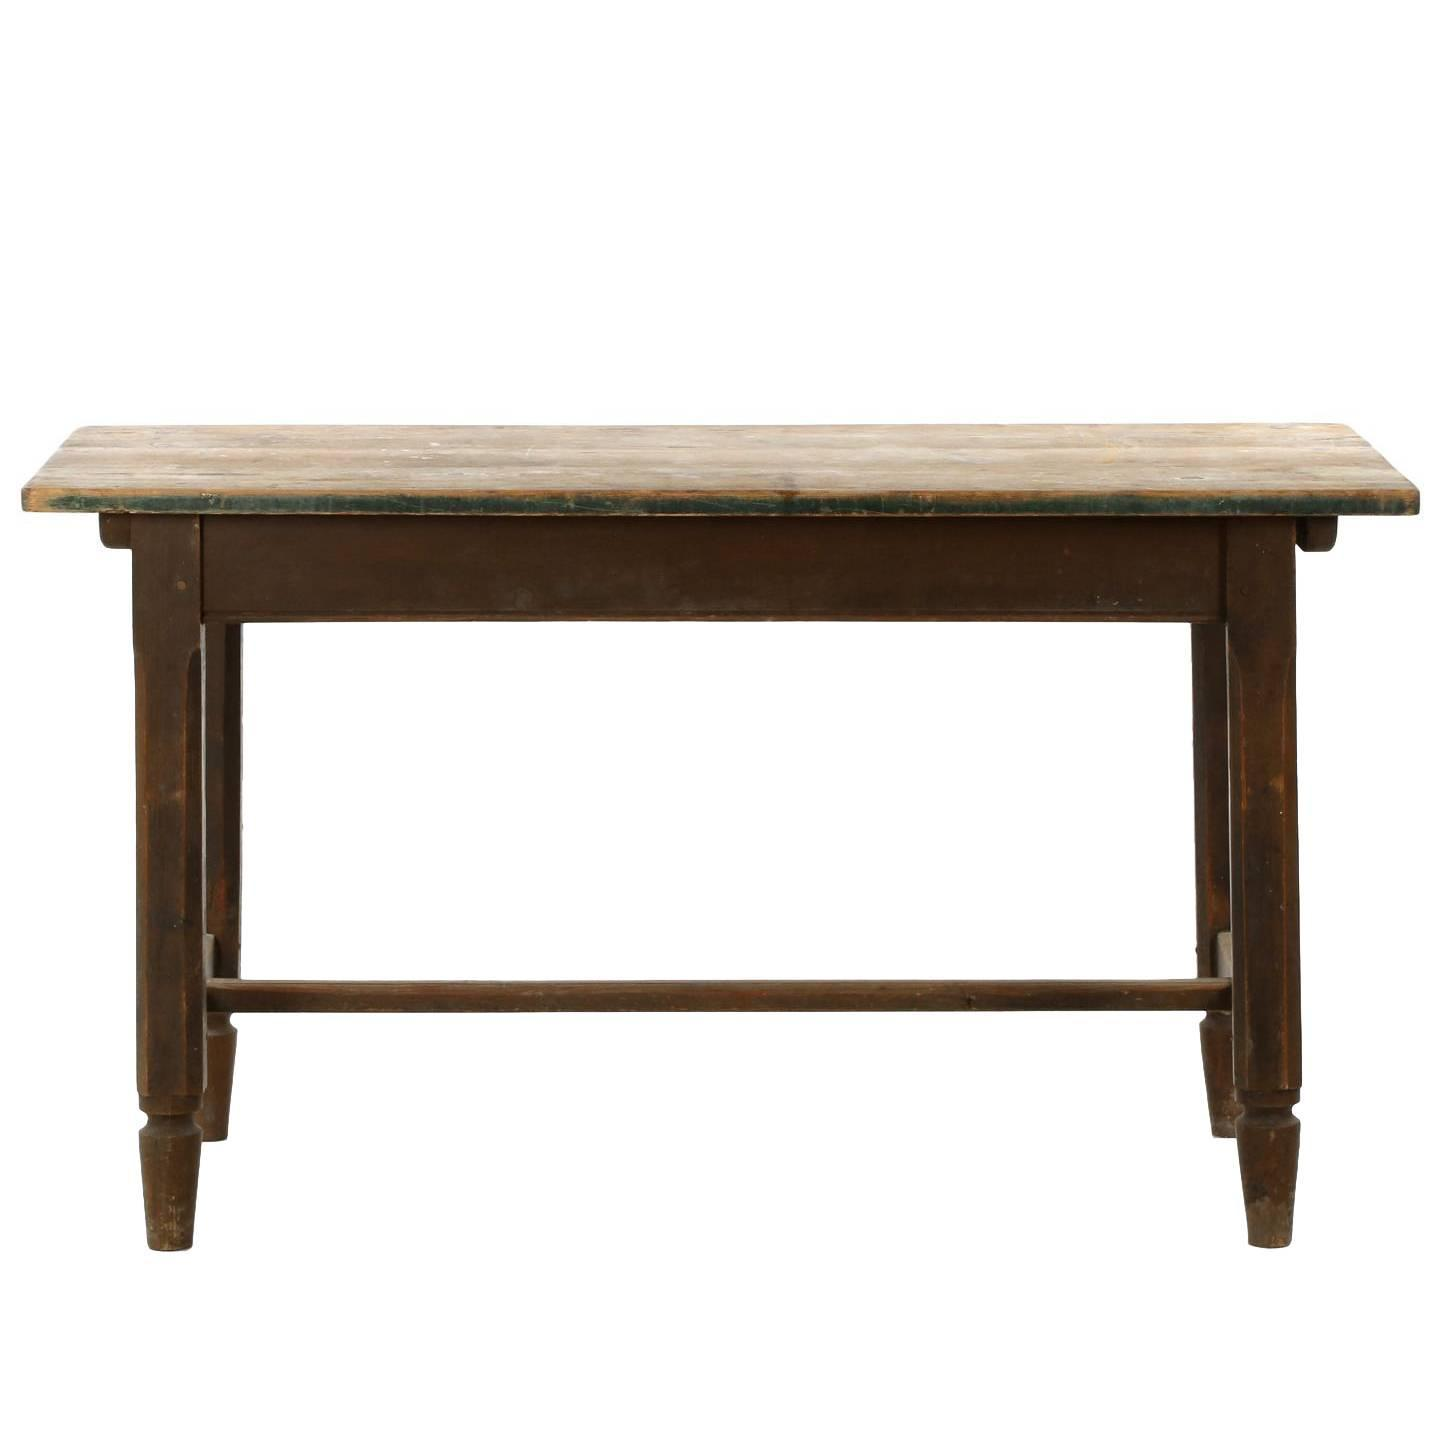 English Scrubbed Pine Antique Work Farm Tavern Table, 19th Century For Sale  at 1stdibs - English Scrubbed Pine Antique Work Farm Tavern Table, 19th Century